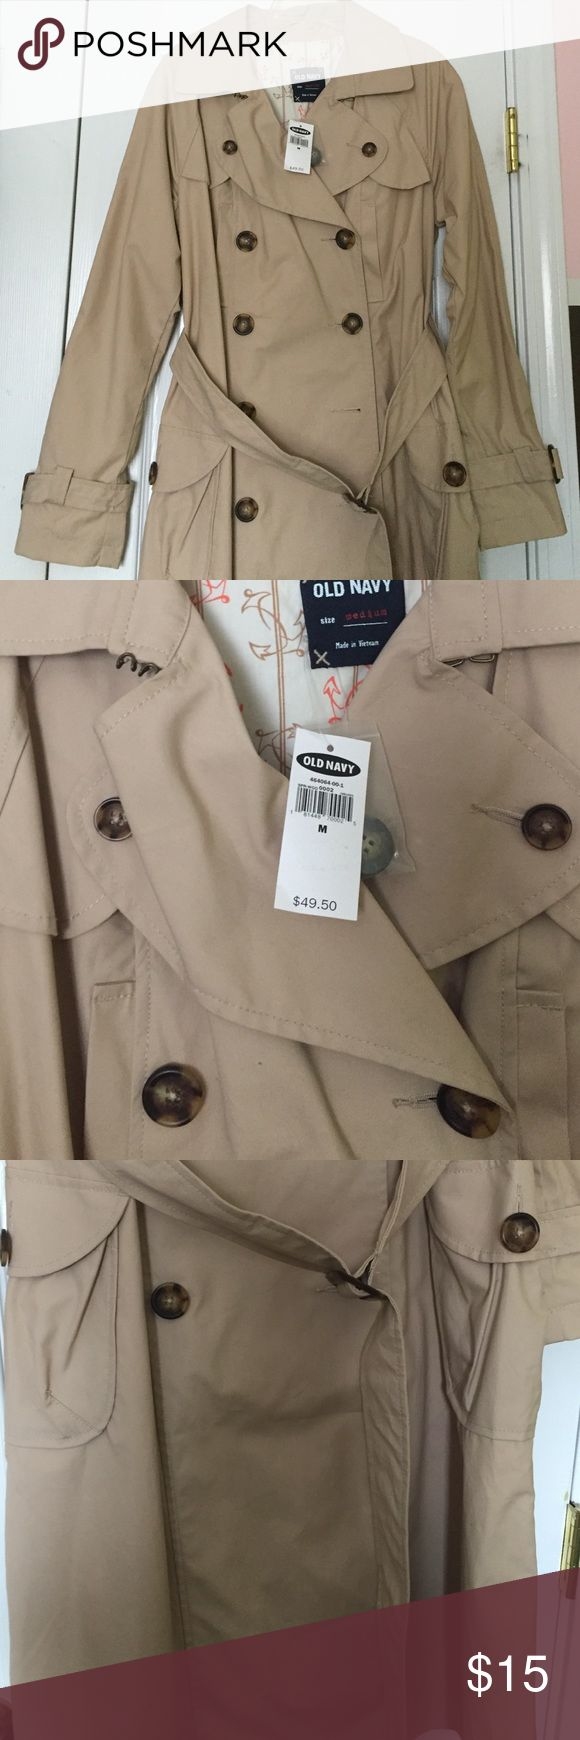 BRAND NEW khaki trench coat!! Khaki color, New with tags still attached! Old Navy Jackets & Coats Trench Coats